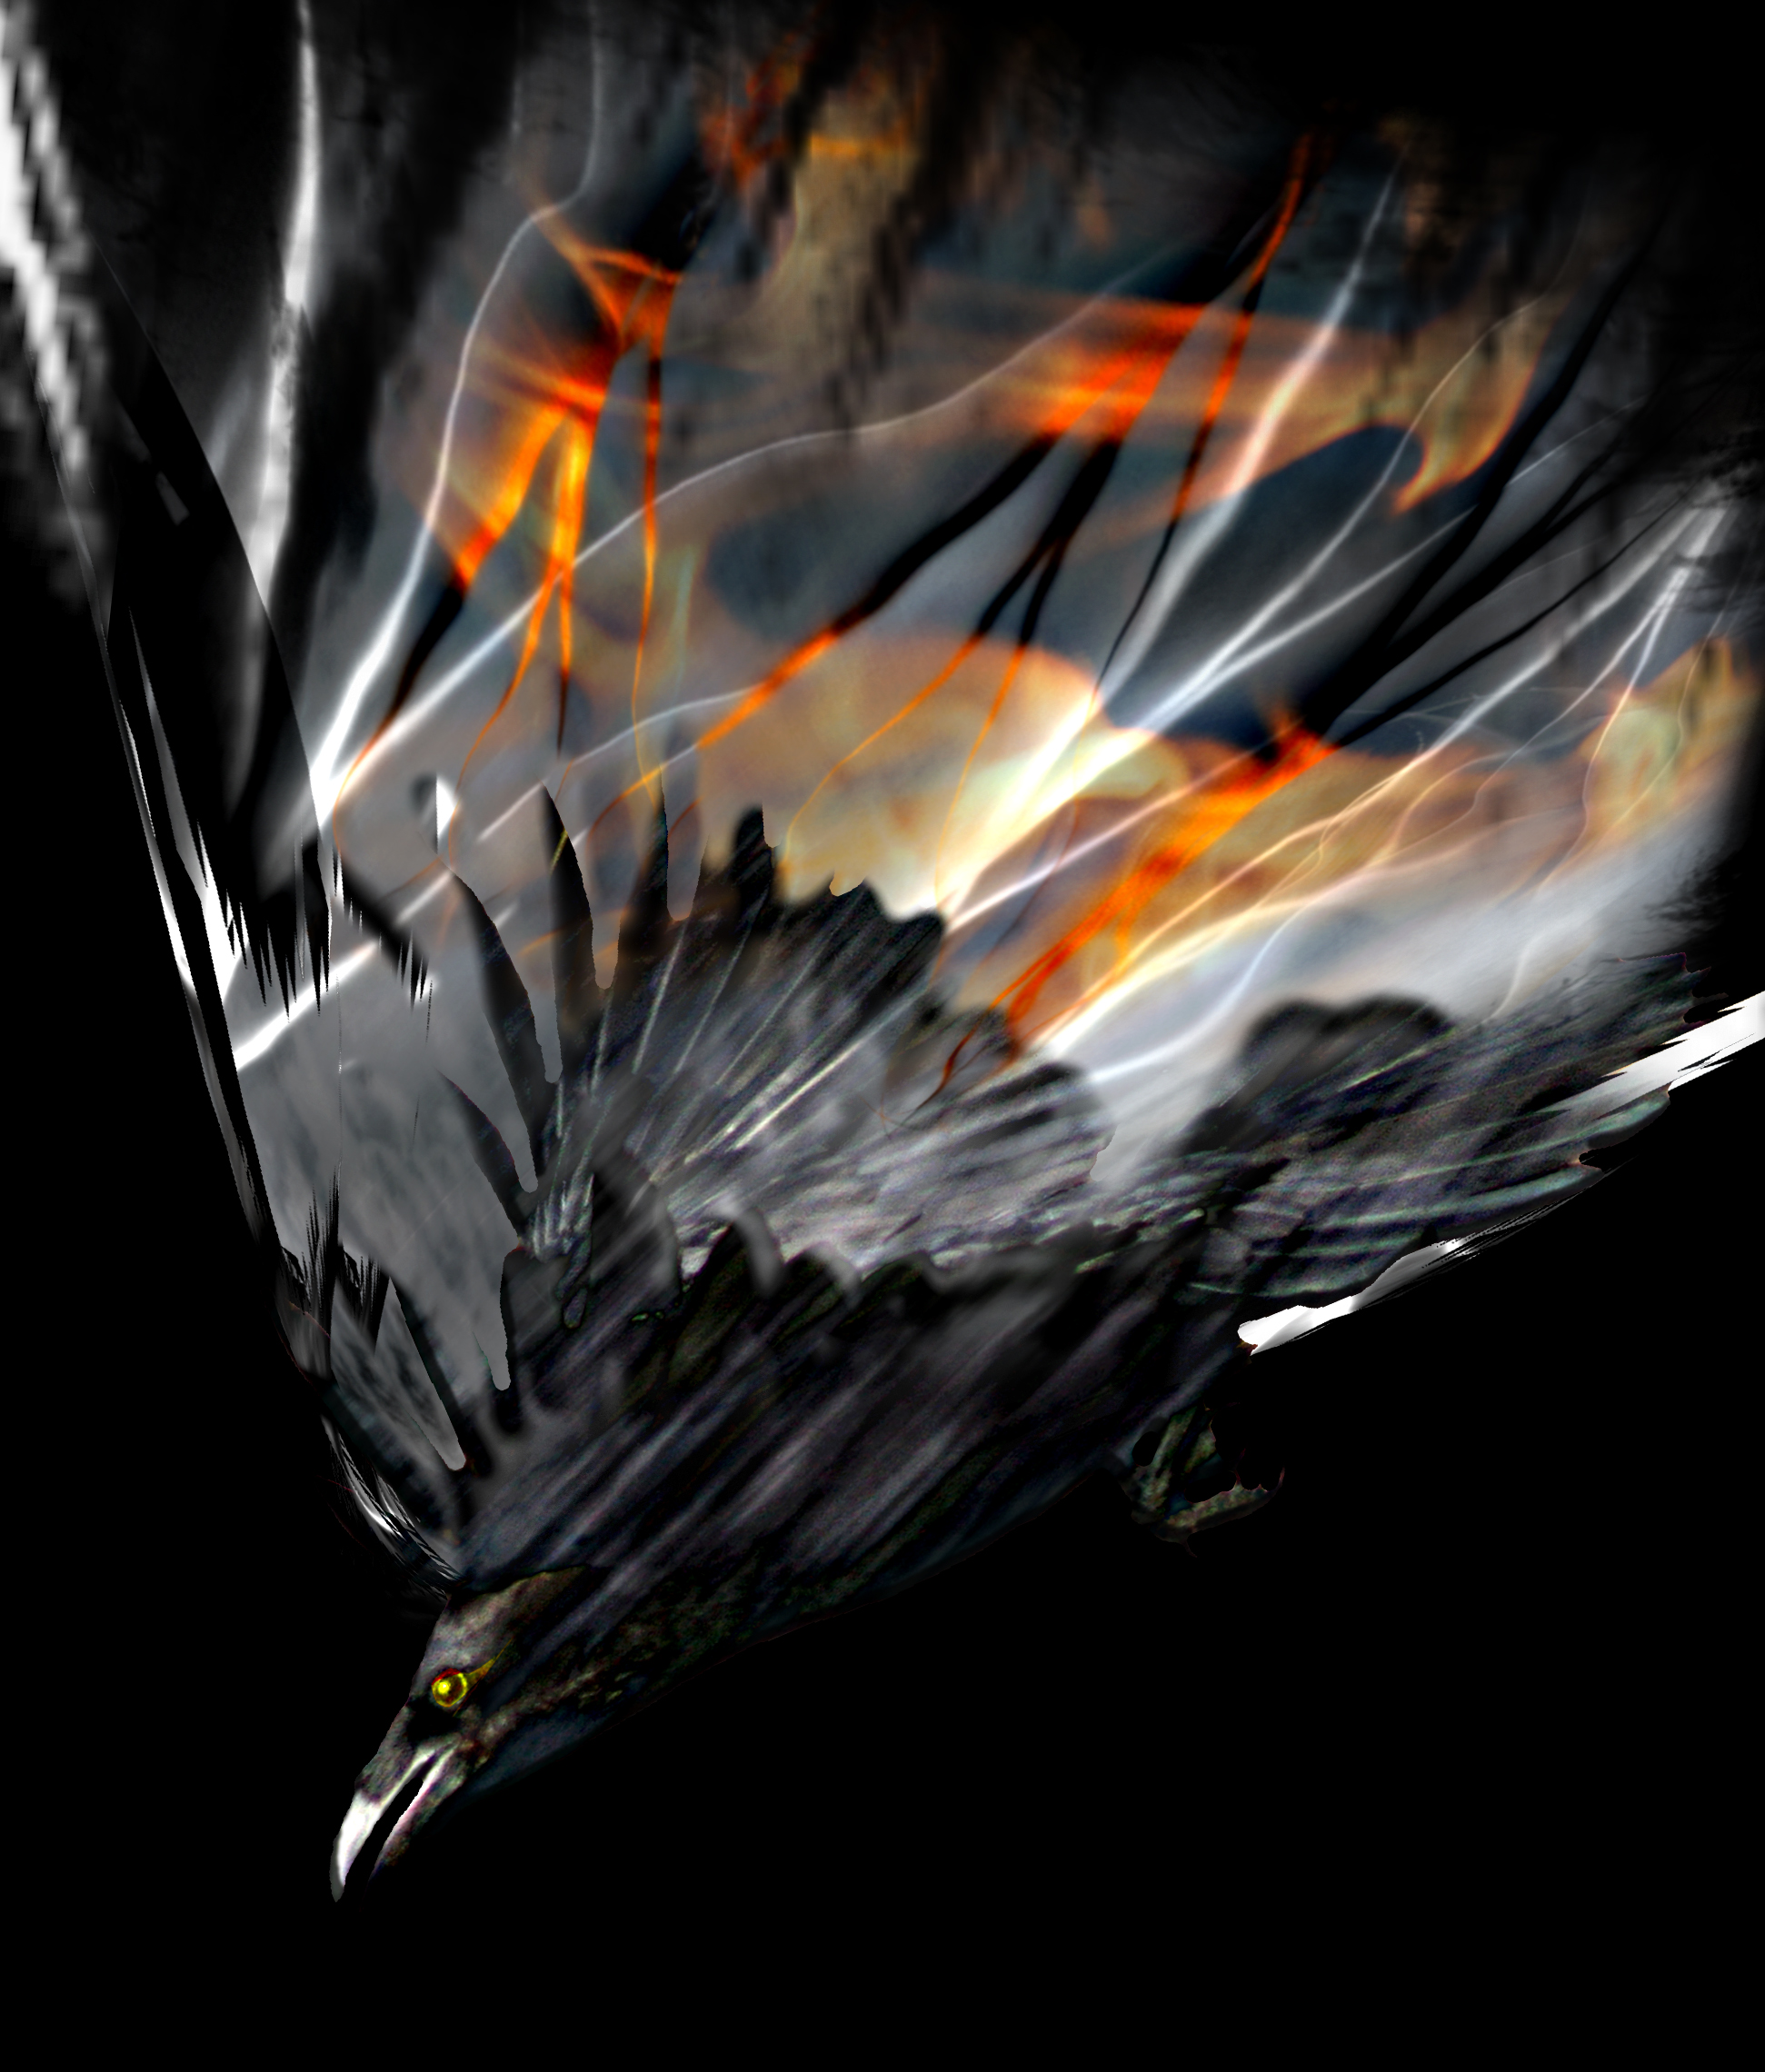 A raven in bouquet of fire by jackodeco